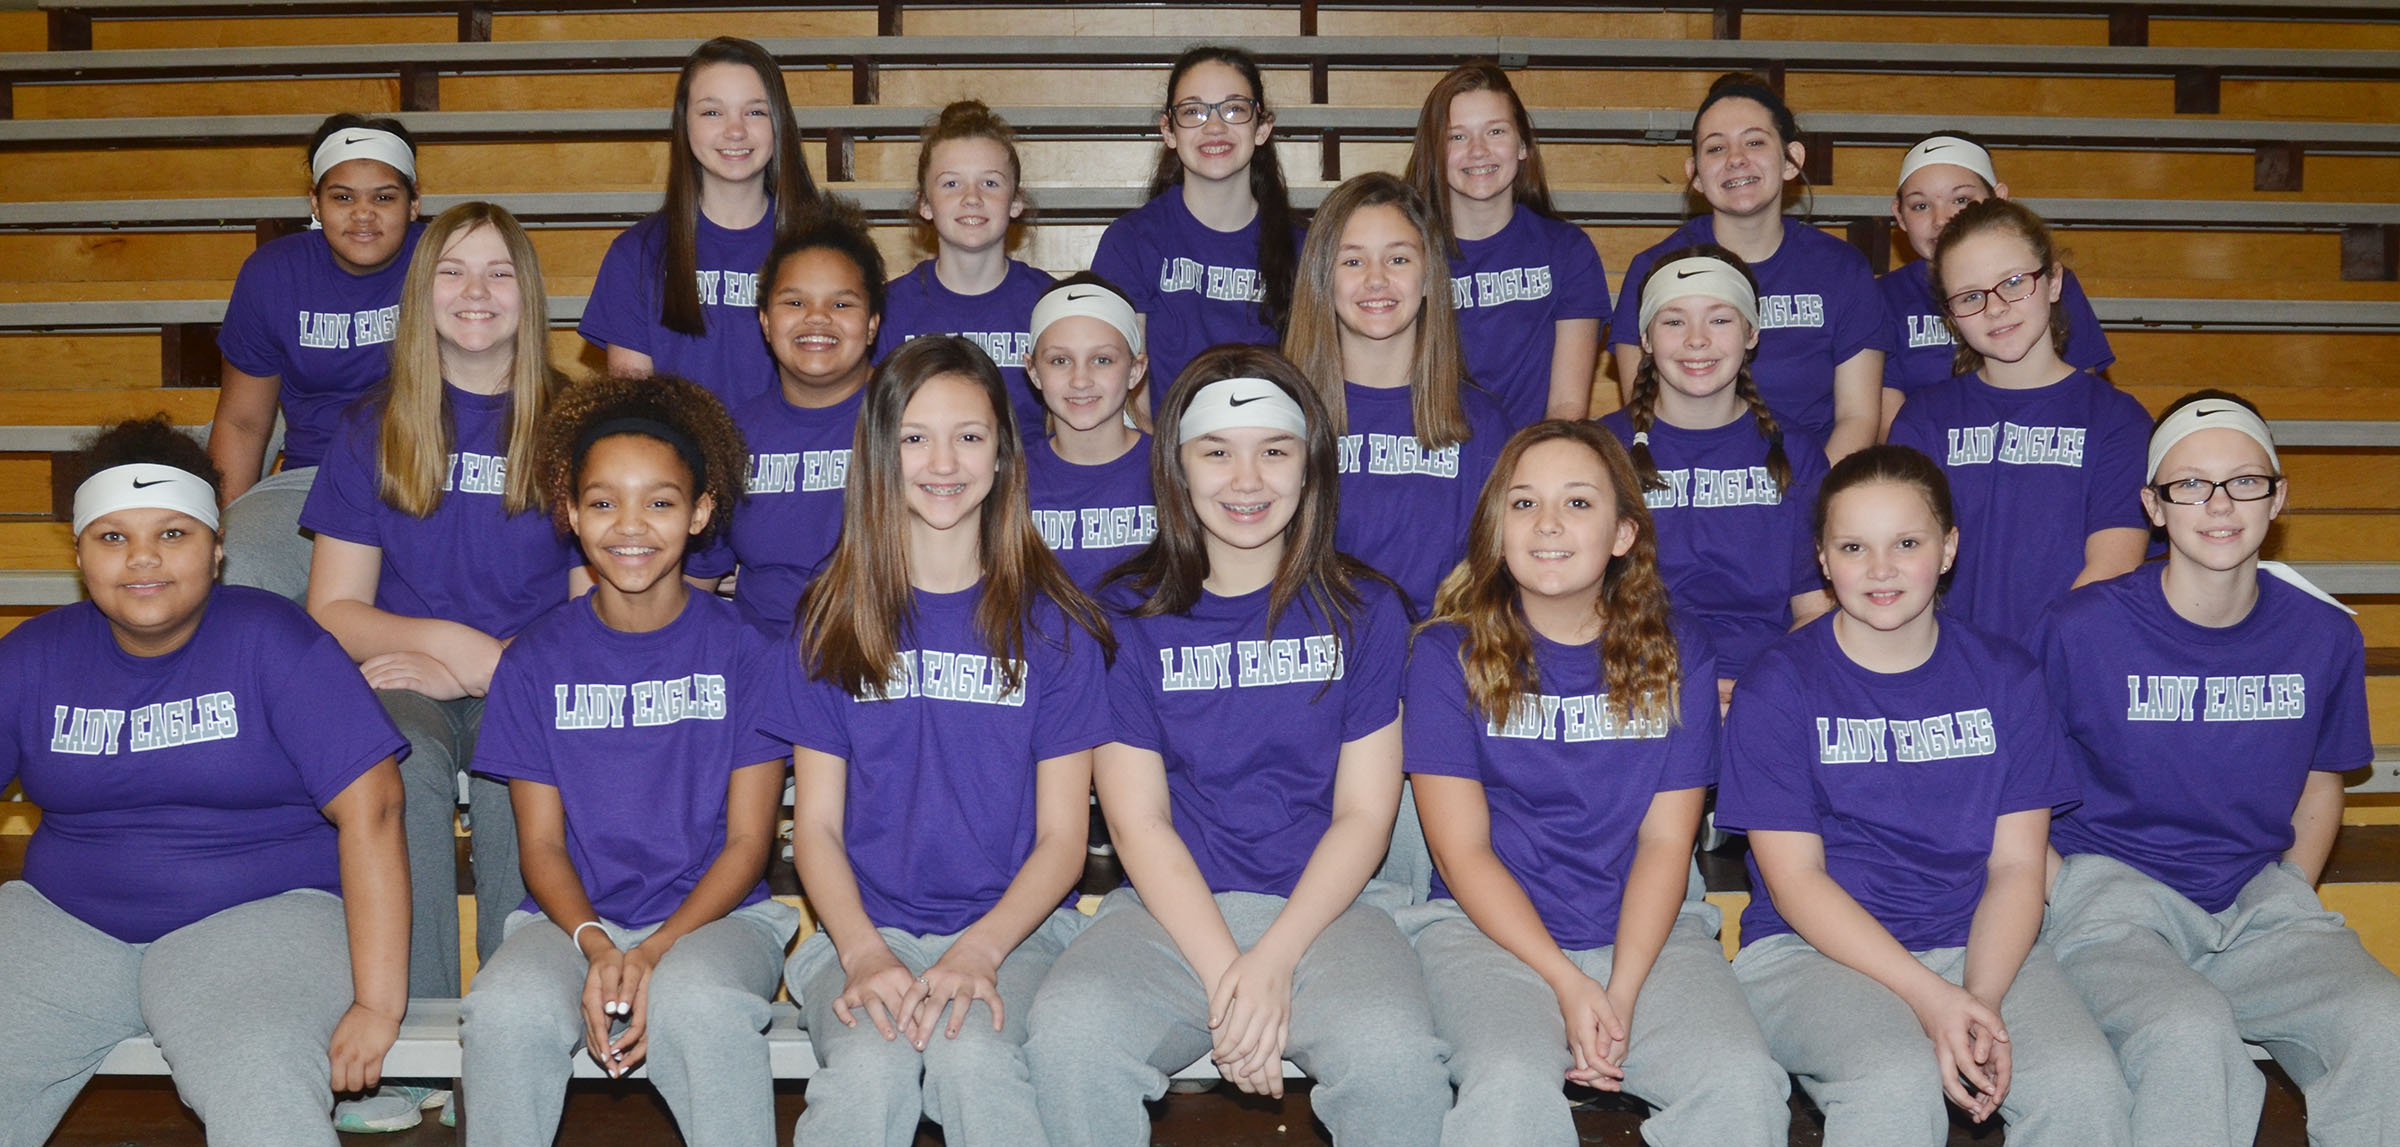 This year's CMS softball team includes, from left, front, sixth-grader Brooklyn Taylor, seventh-grader Alexis Thomas, sixth-grader Bri Hayes, seventh-grader Olivia Fields and sixth-graders Briana Davis, Graci Crews and Jade Wheeler. Second row, seventh-grader Isabella Vannice, sixth-graders Alissa Lofton, Alexis Byers and Haylee Allen and fifth-graders CheyAnn Edwards and Karlie Cox. Back, sixth-grader Asia Barbour, seventh-grader Karley Morris, sixth-graders Dakota Slone, Mary Russell and Breanna Humphress, eighth-grader Kaylee Reynolds and fourth-grader Piper Maggard.